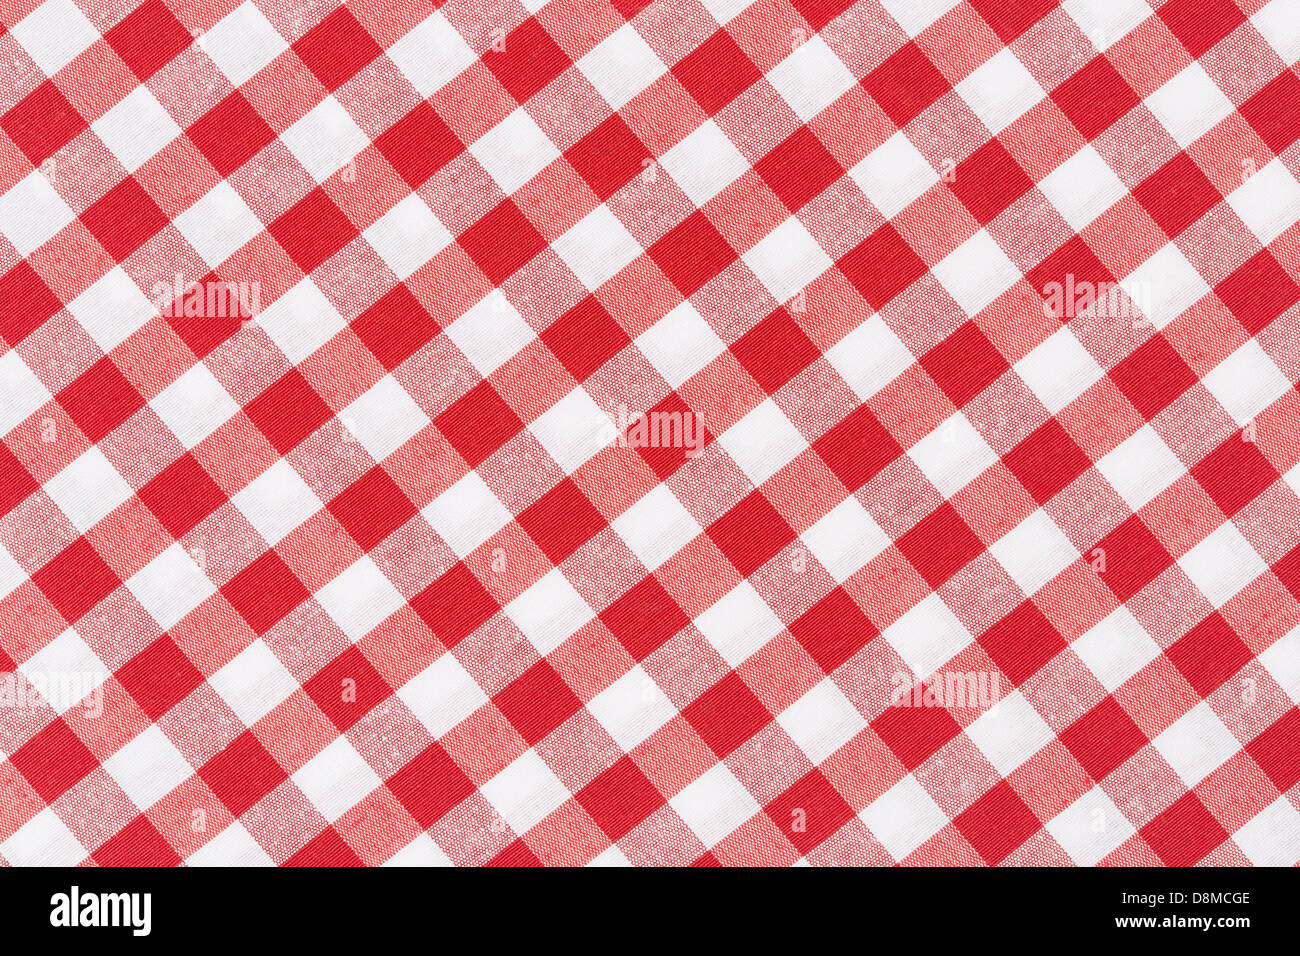 High Quality Red And White Gingham Tablecloth Diagonal Texture Background